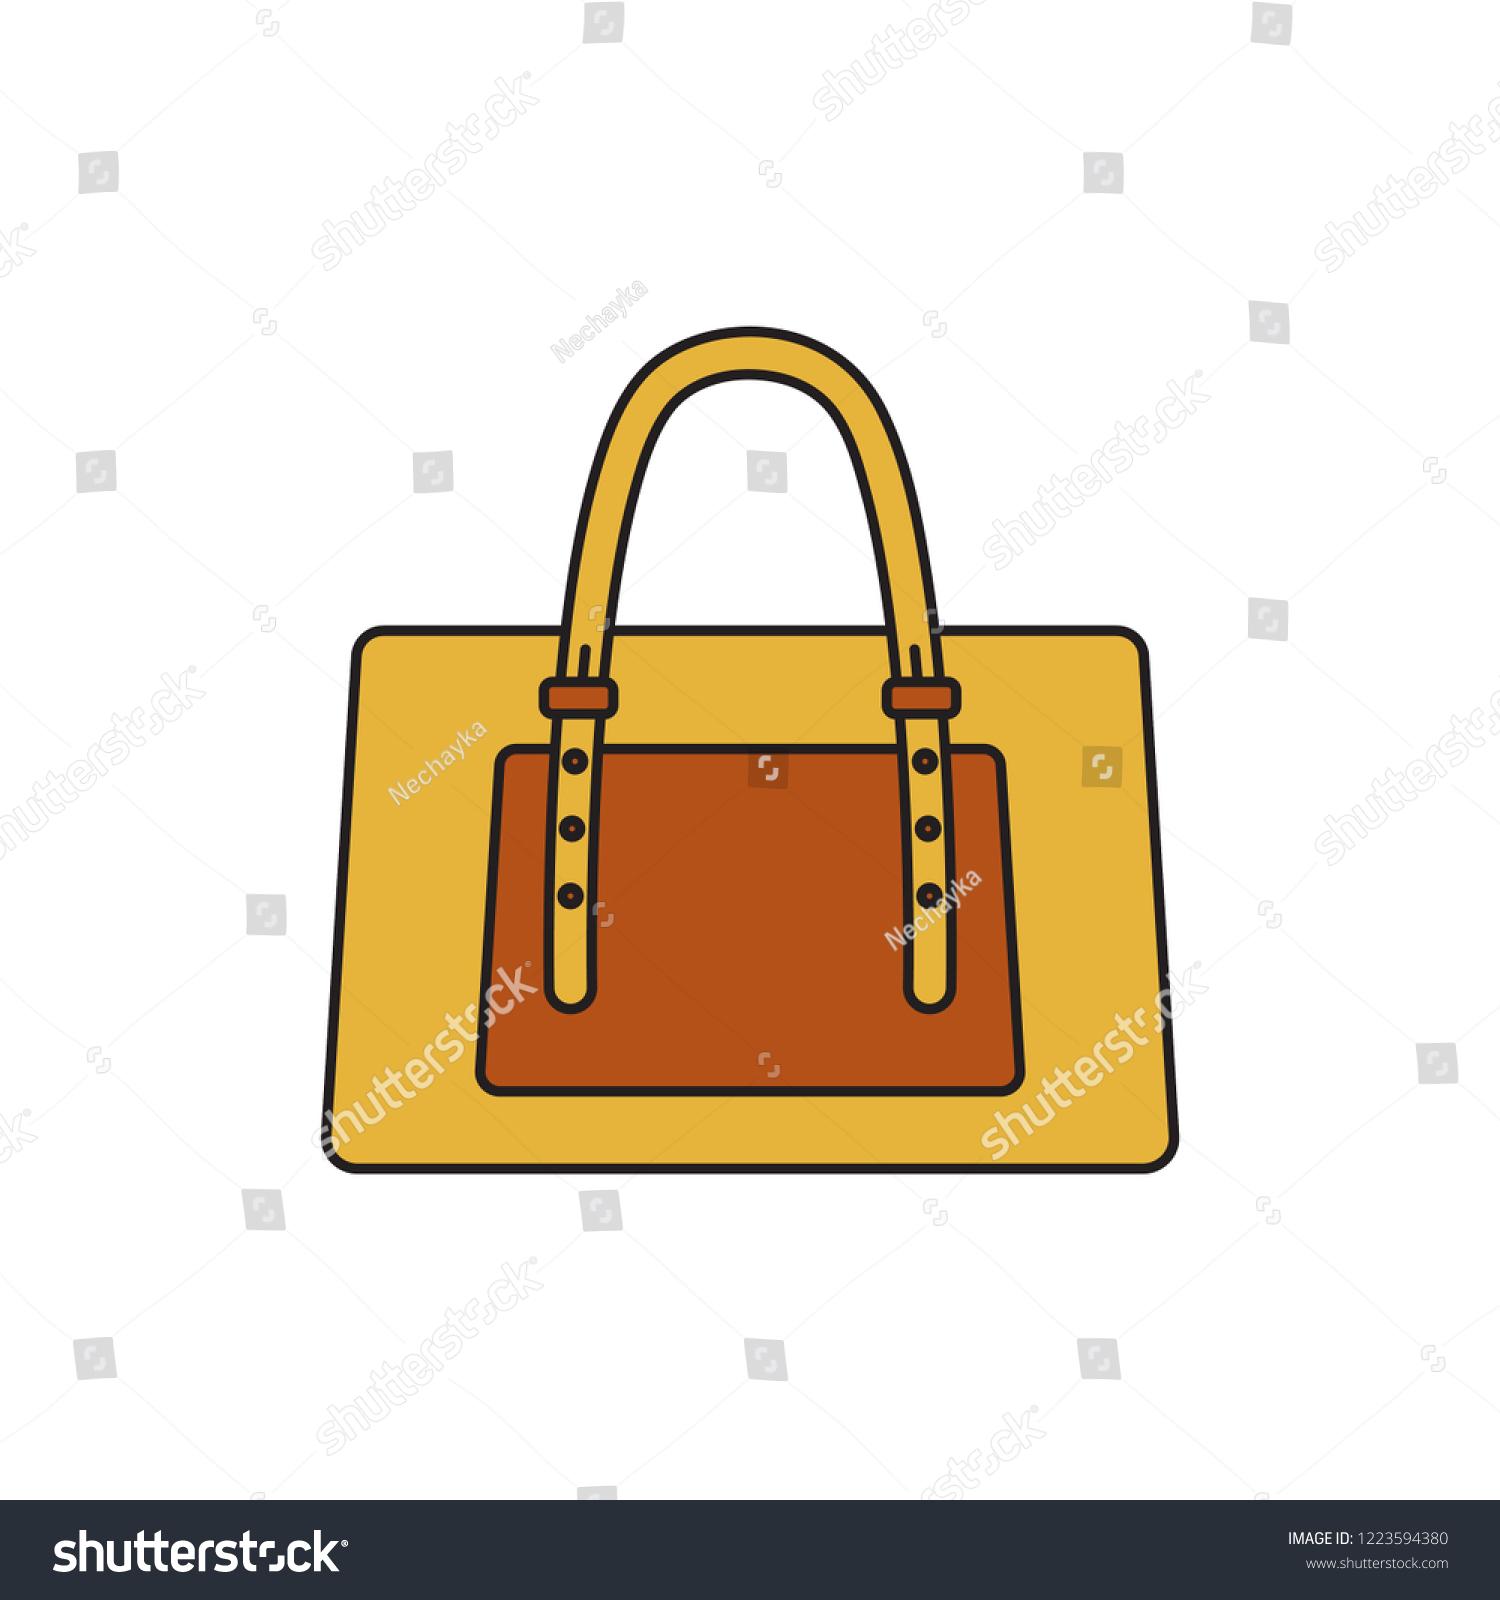 dd5c9e2577 Bag Vector Icon Graphic Symbol Isolated Stock Vector (Royalty Free ...